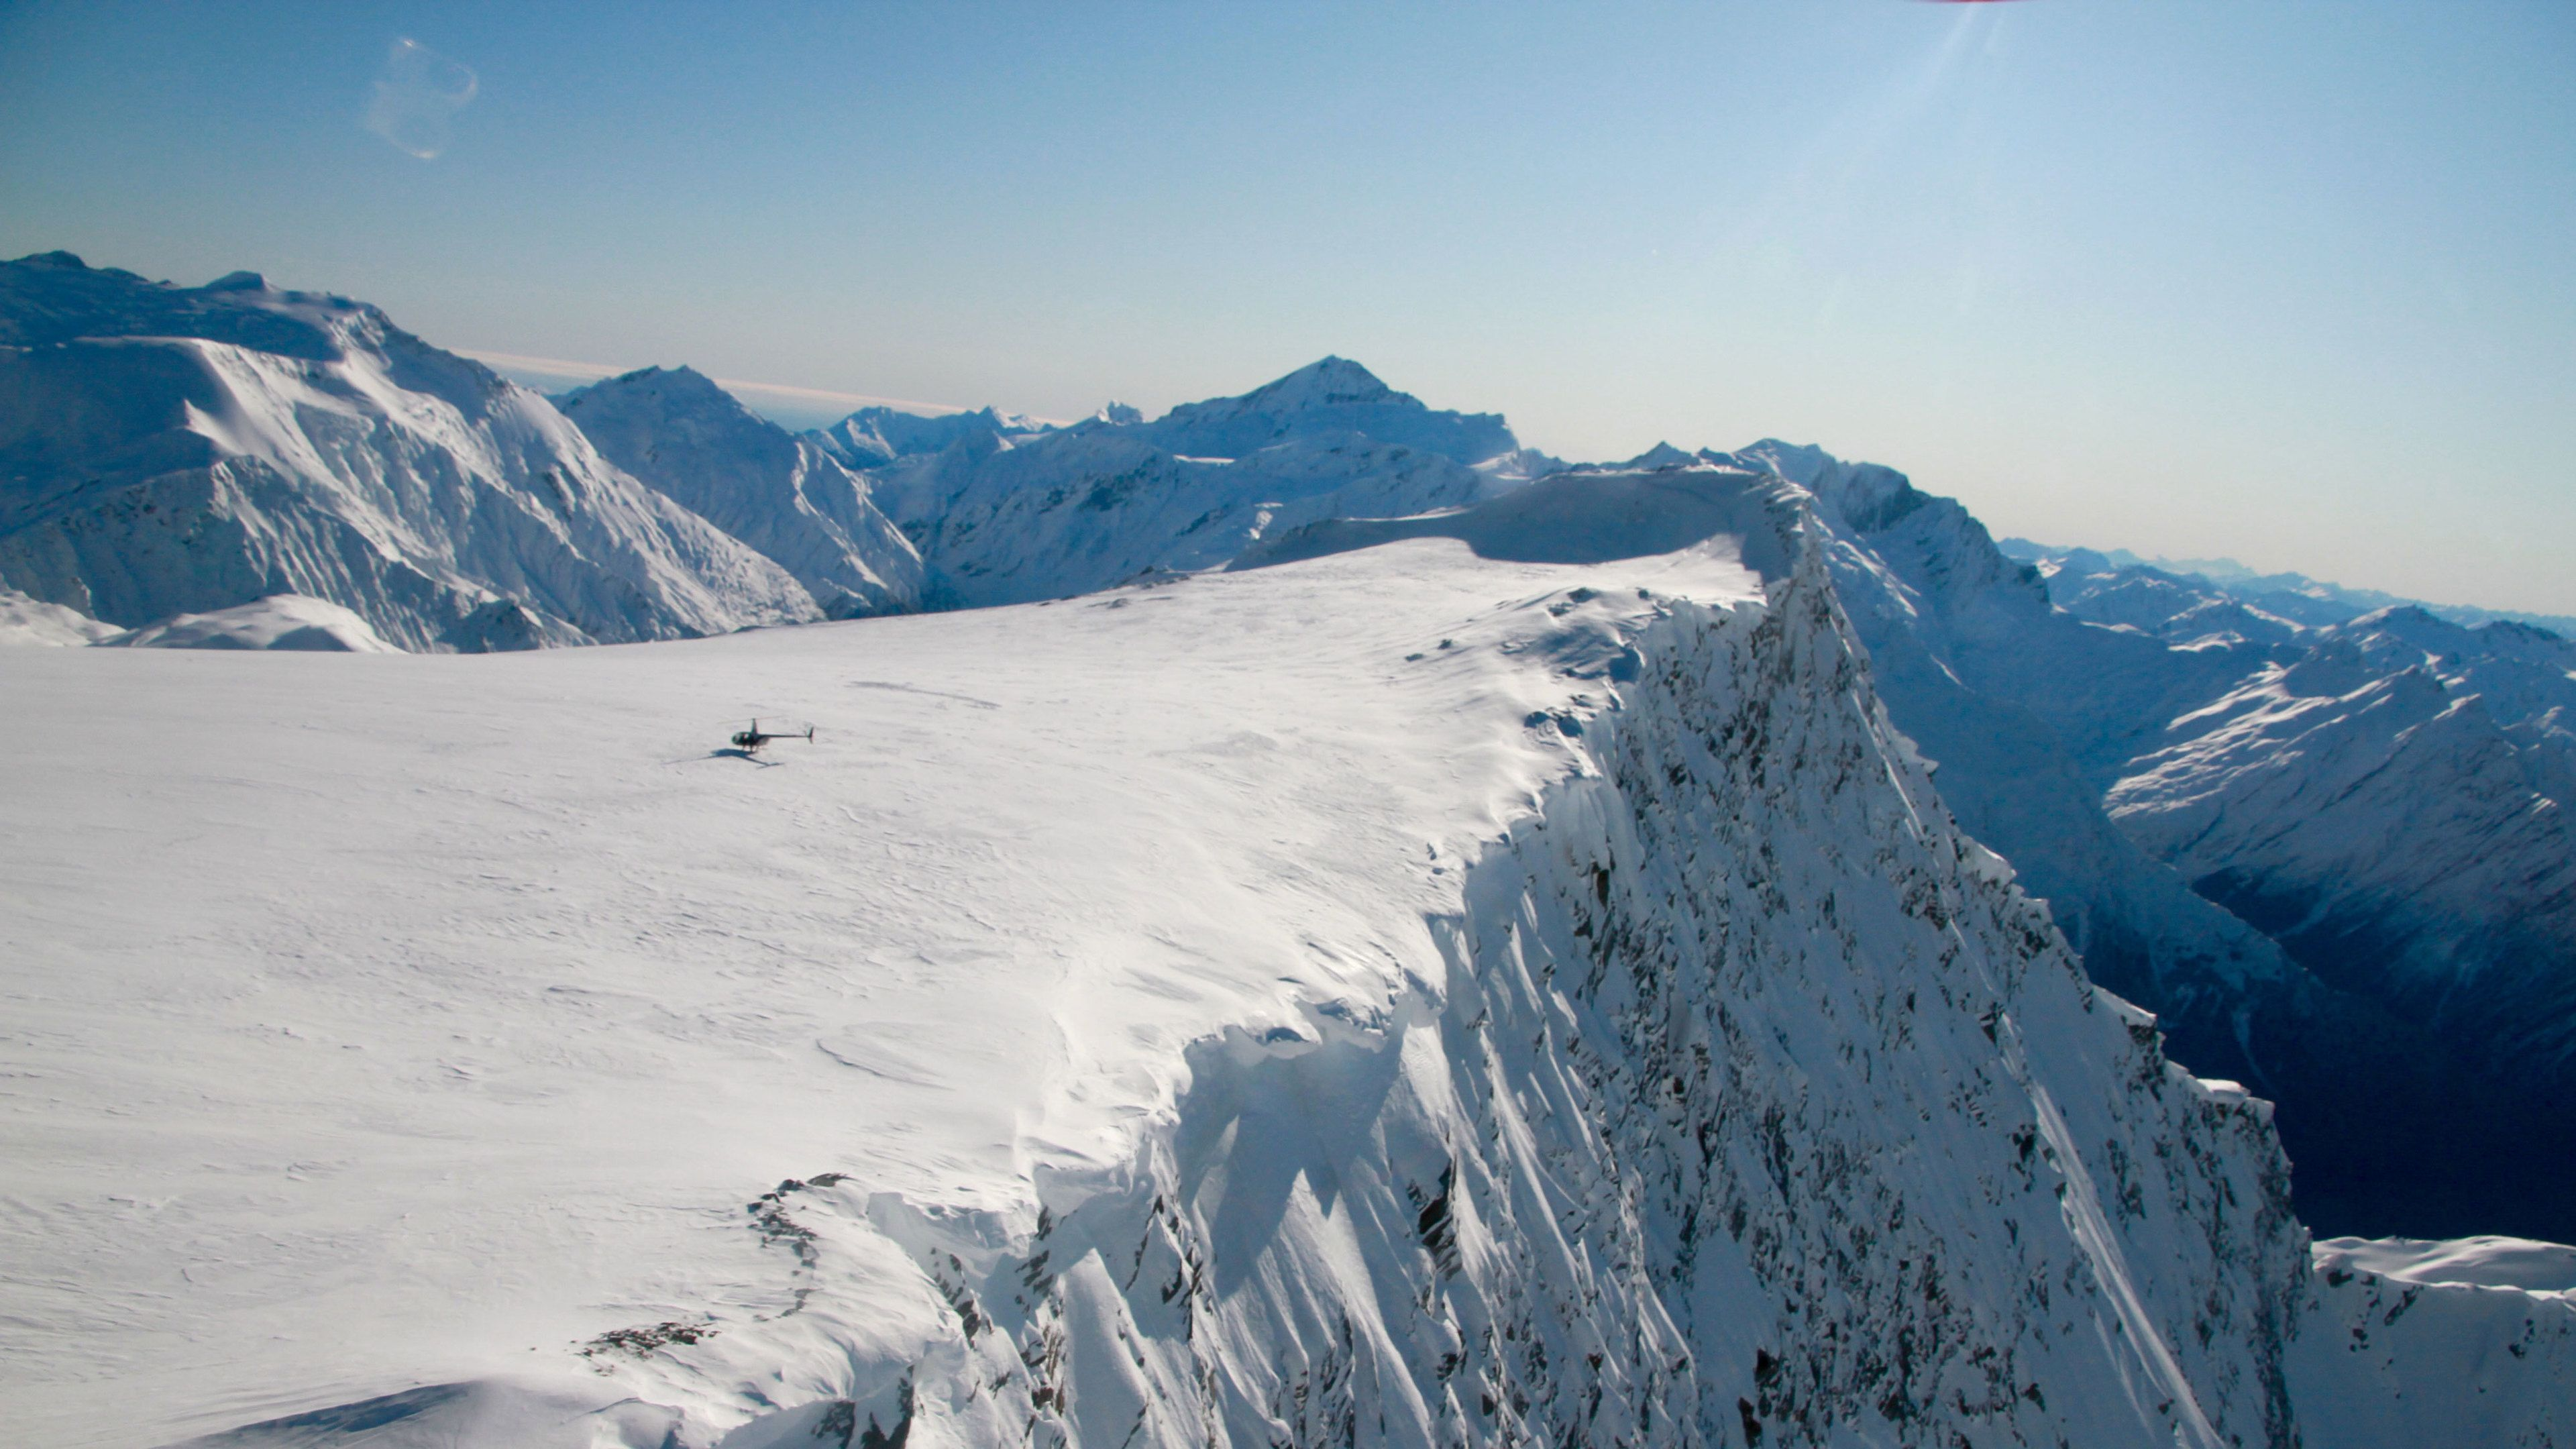 Aerial view of Helicopter on snowy mountain top